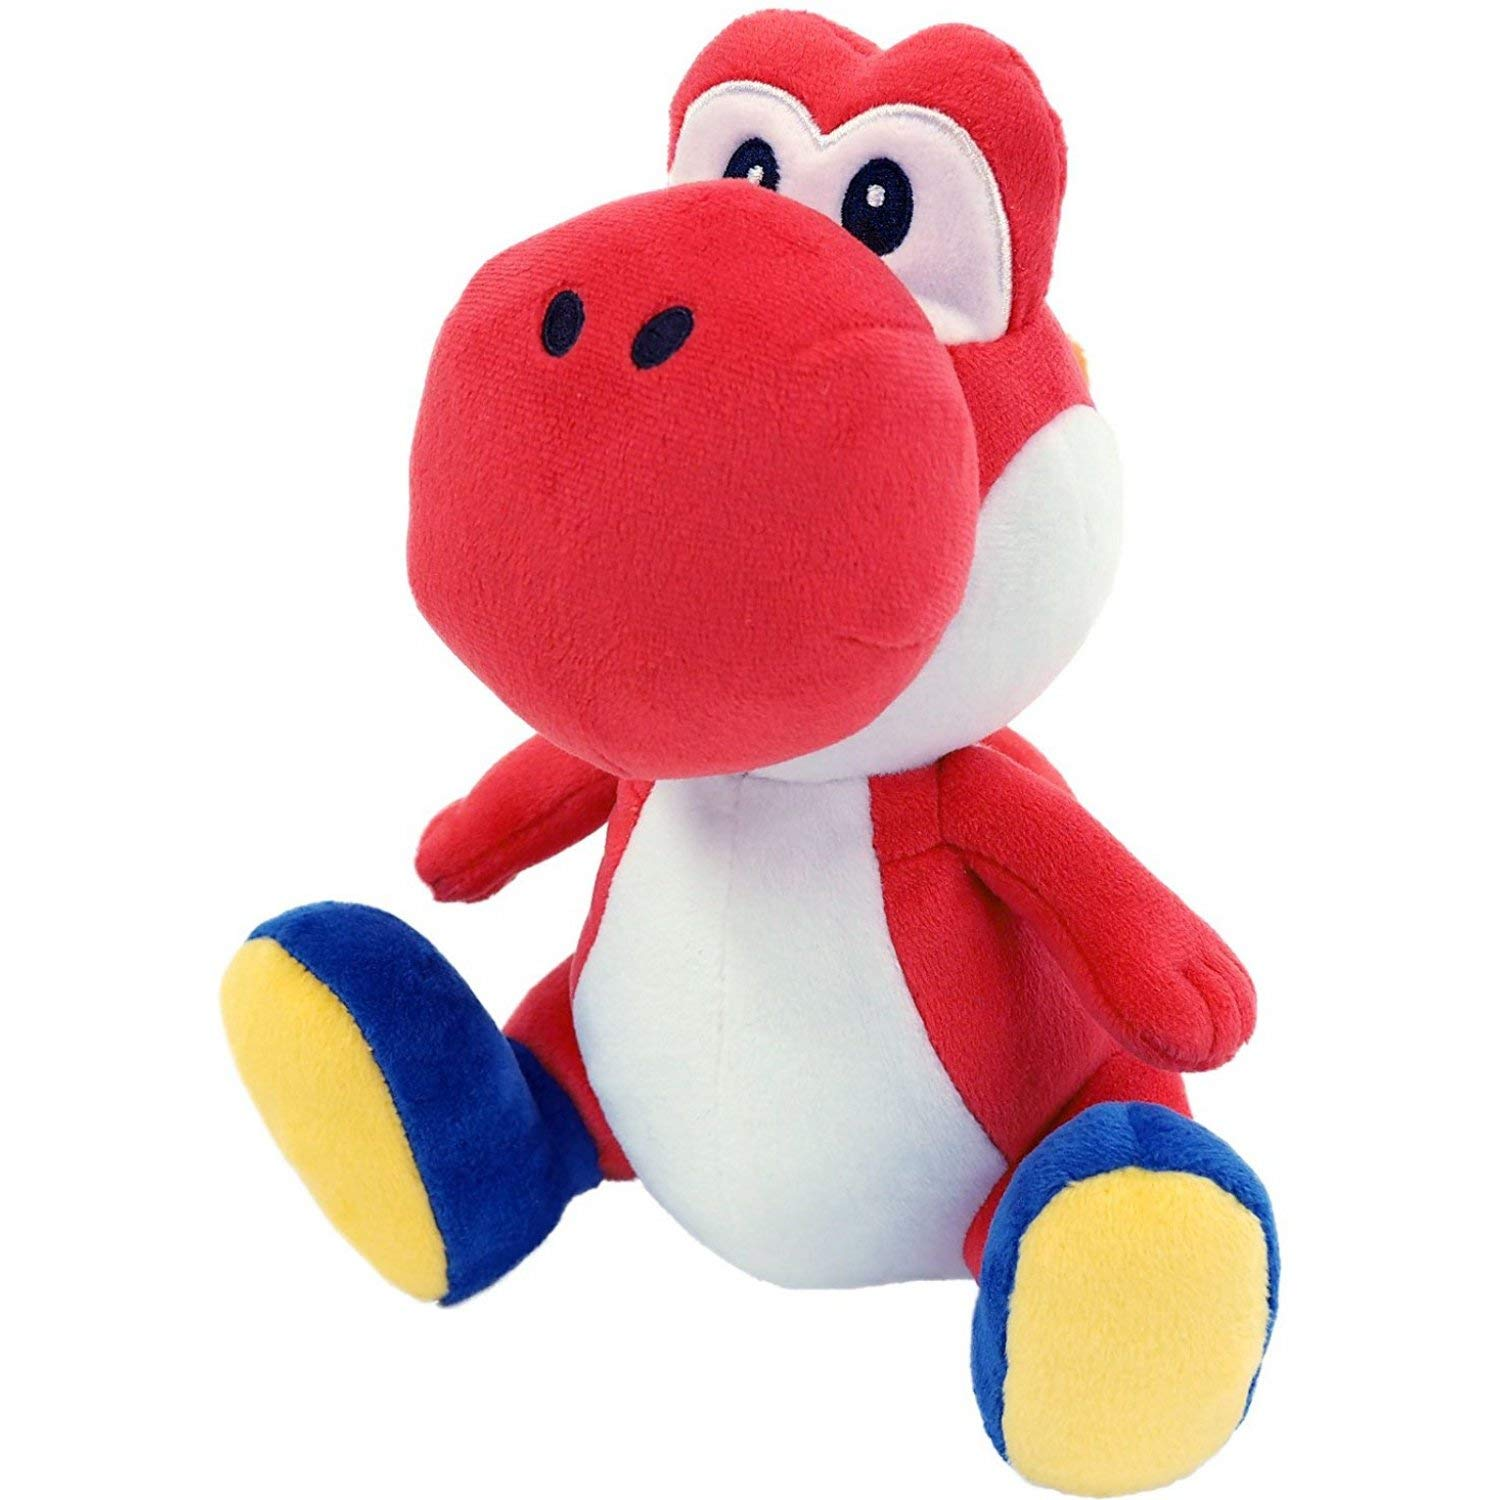 Little Buddy 1389 Super Mario All Star Collection Red Yoshi Plush, 7'' by Little Buddy